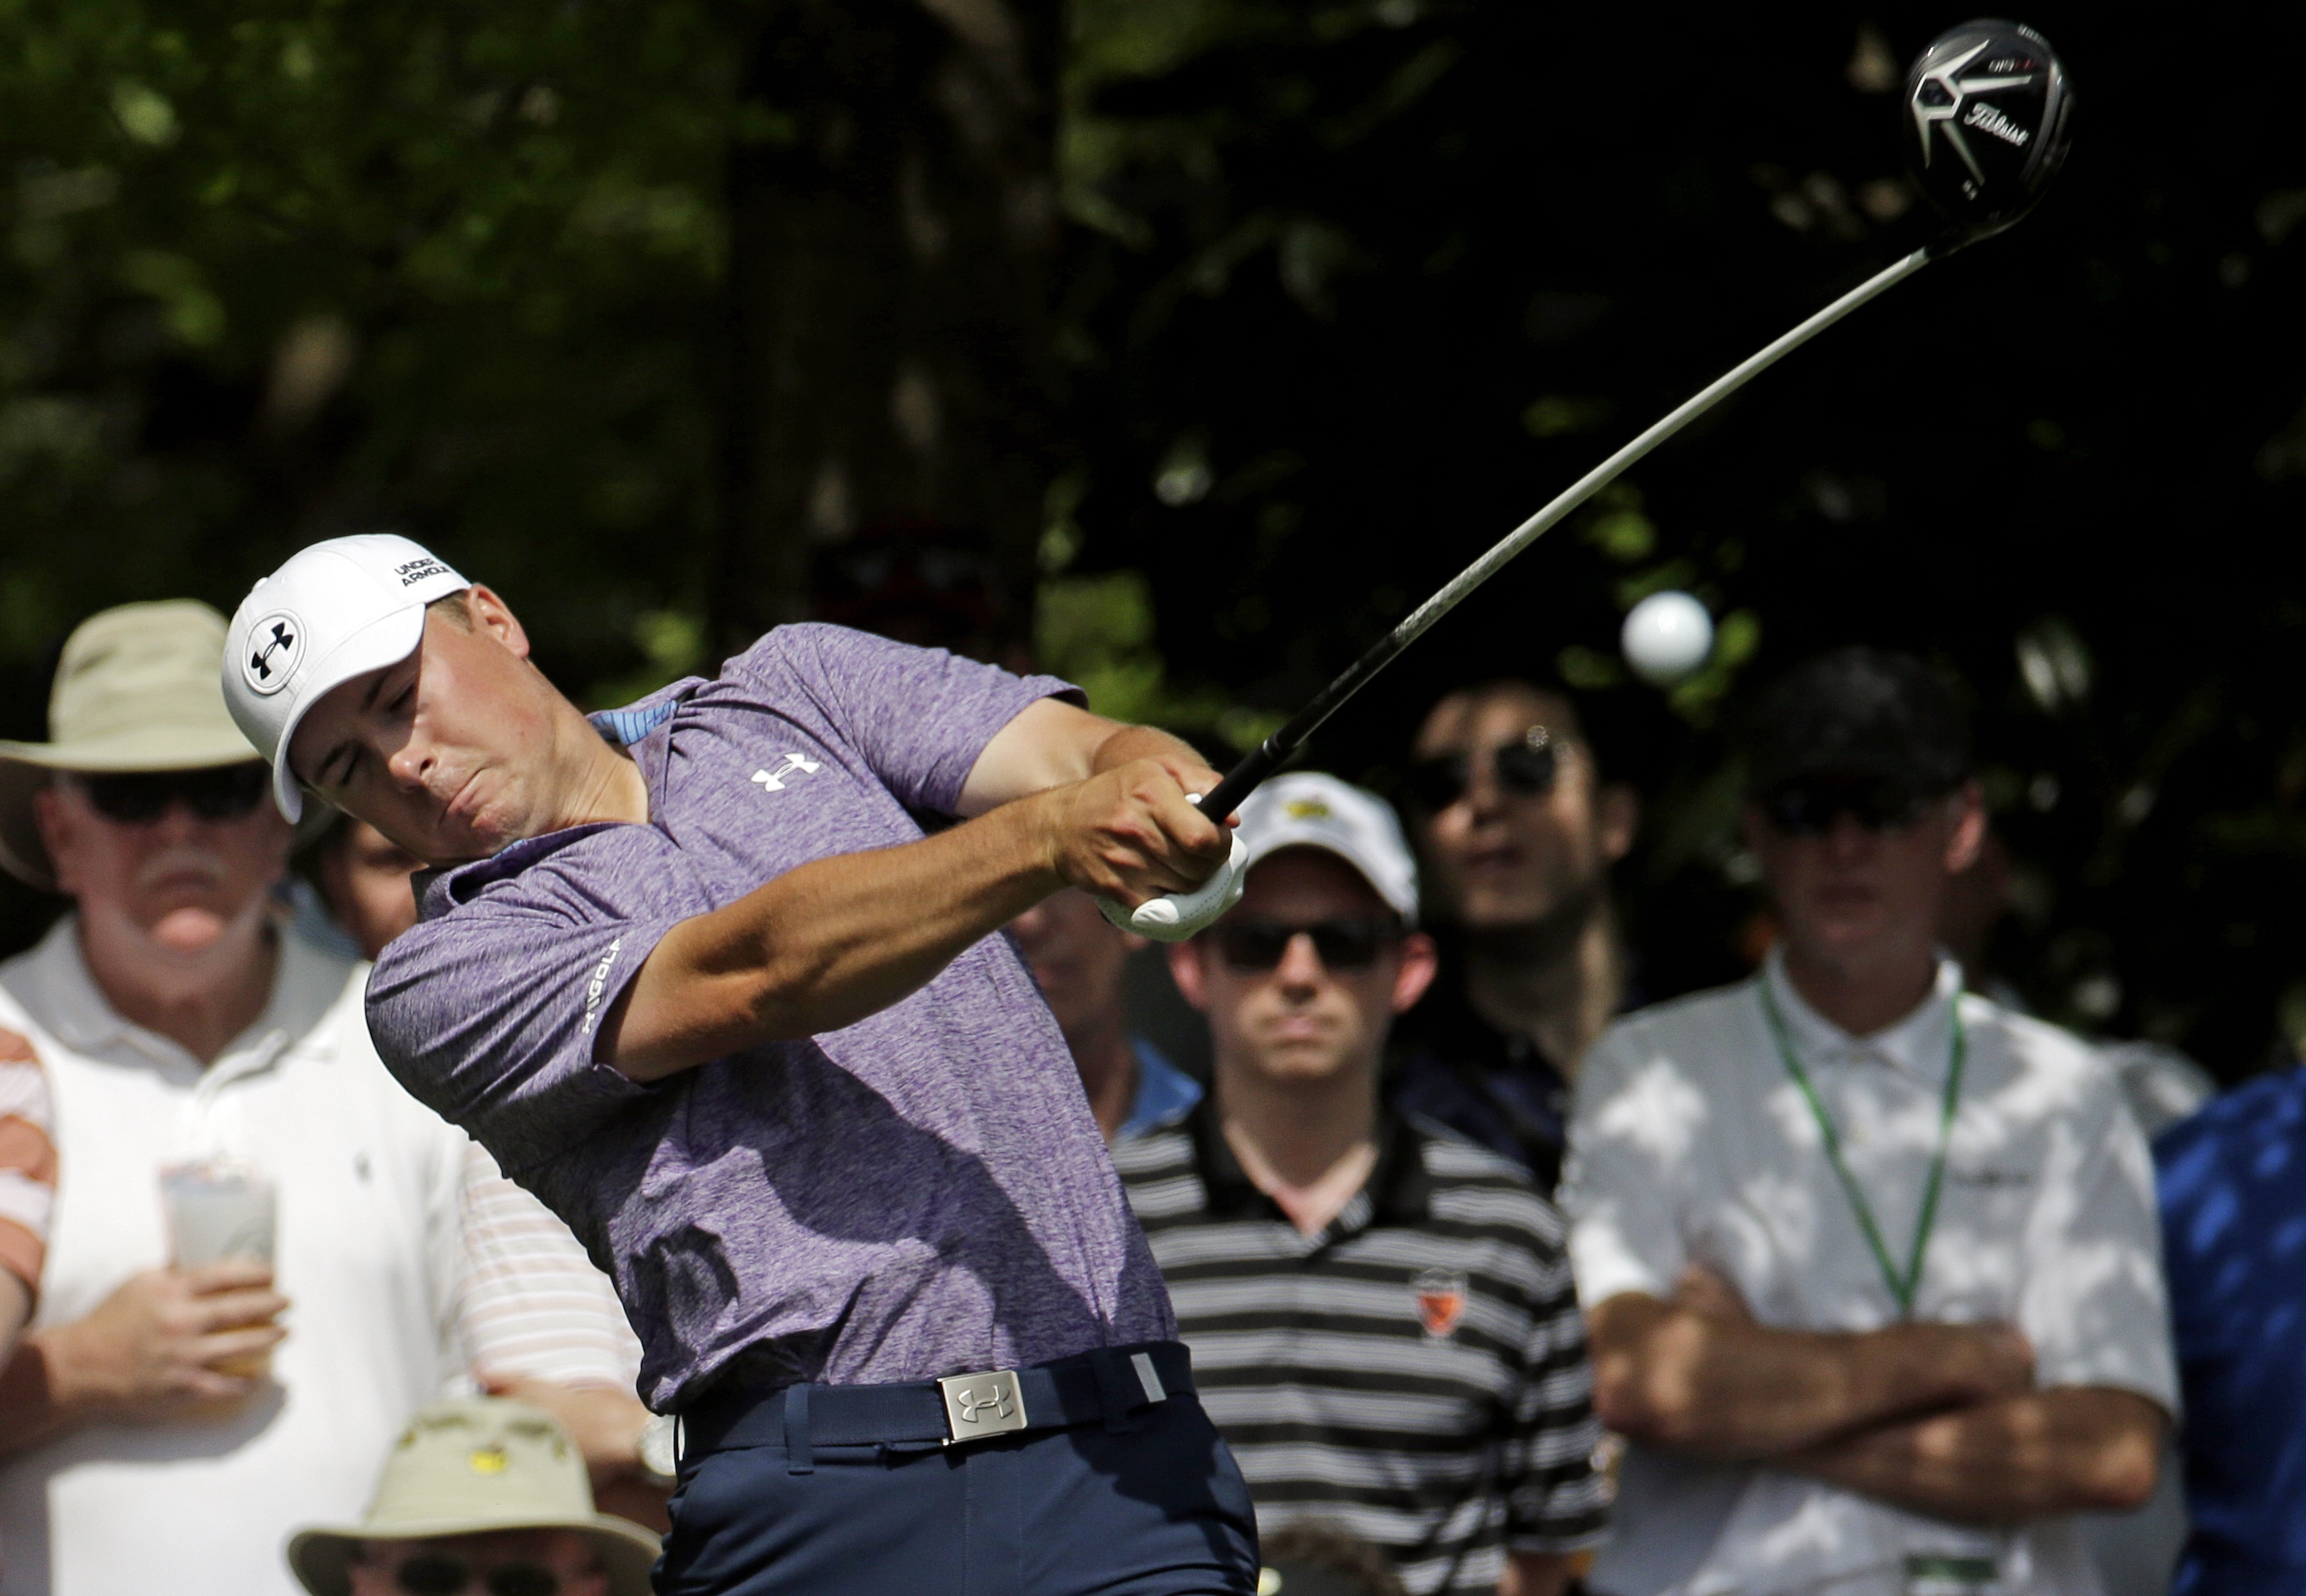 Jordan Spieth tees off on the seventh hole during the second round of the Masters golf tournament Friday, April 10, 2015, in Augusta, Ga. (AP Photo/Charlie